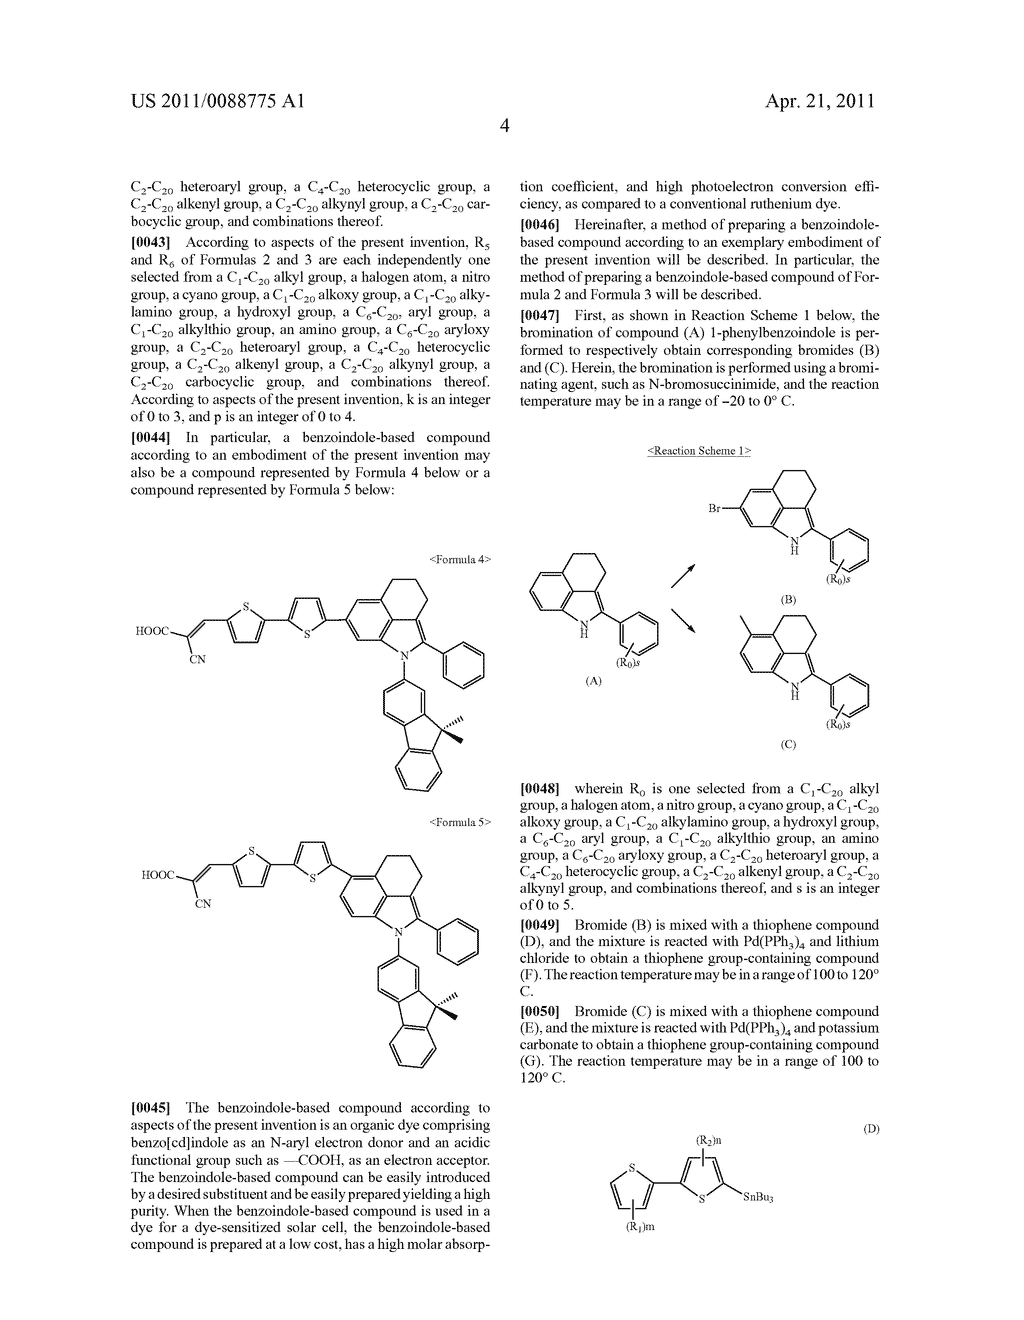 BENZOINDOLE-BASED COMPOUND AND DYE-SENSITIZED SOLAR CELL USING THE SAME - diagram, schematic, and image 13